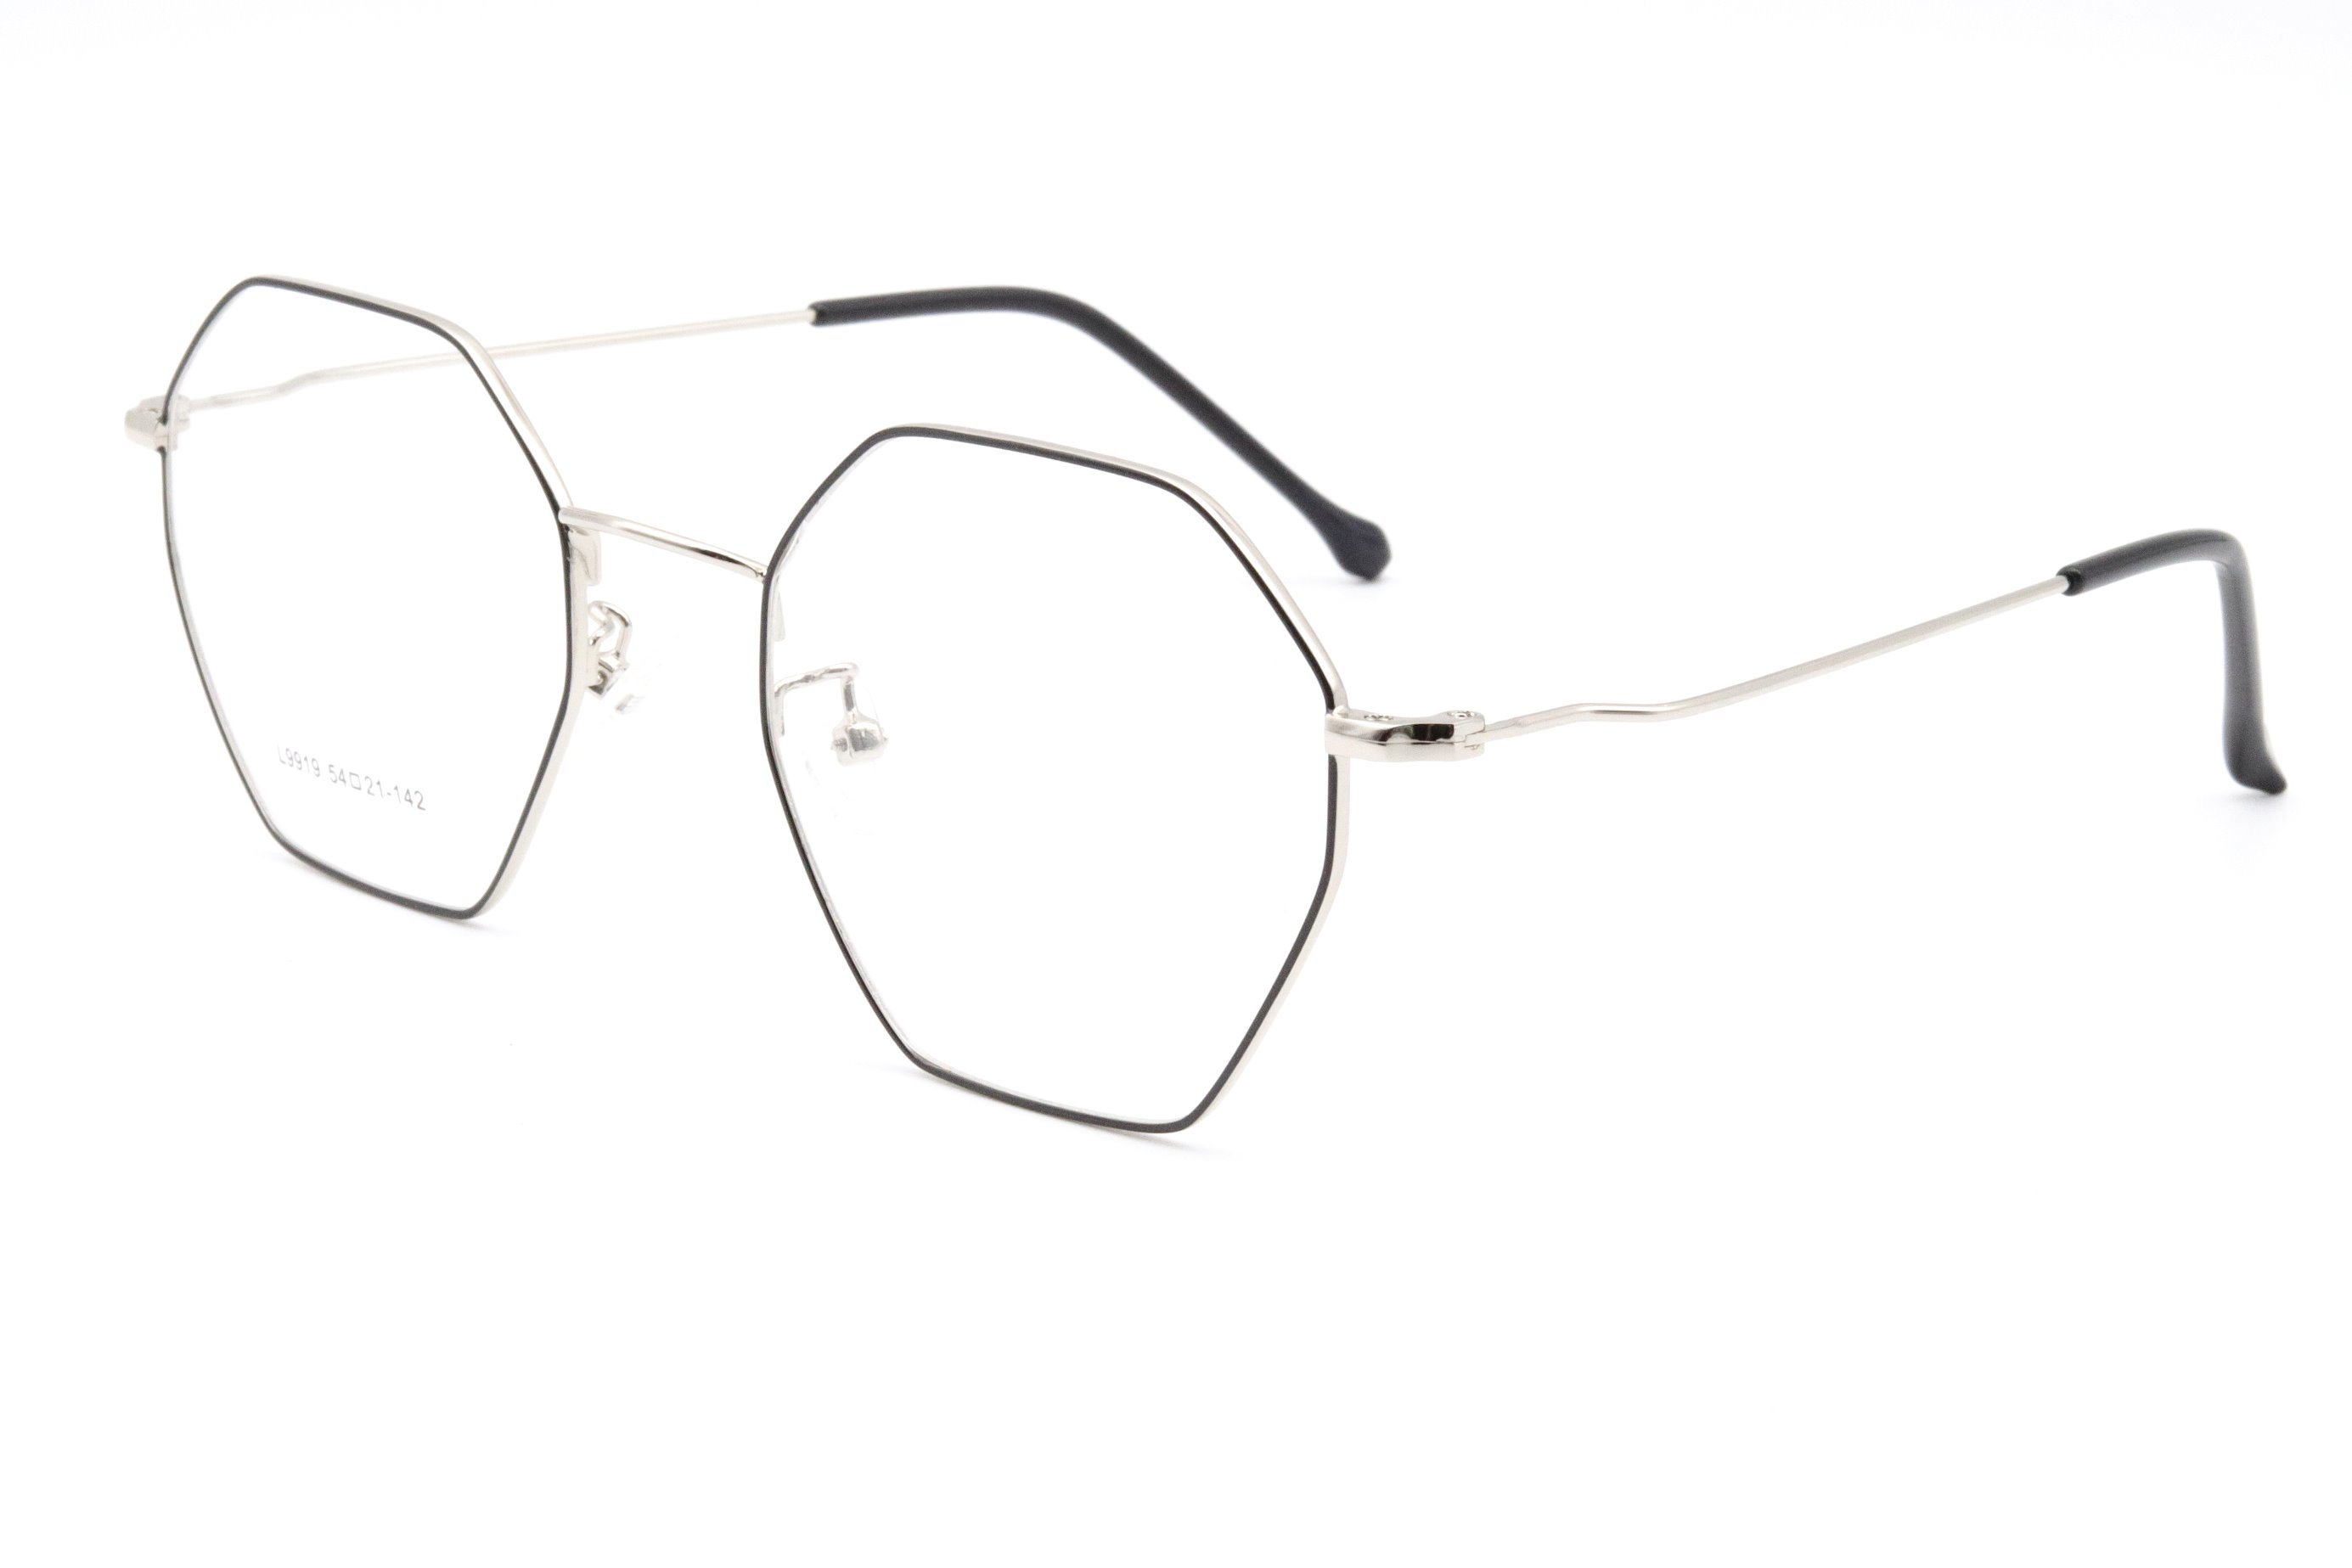 6878b070024 China Popular and Fashion Optical Metal Frame Spectacle Photos ...